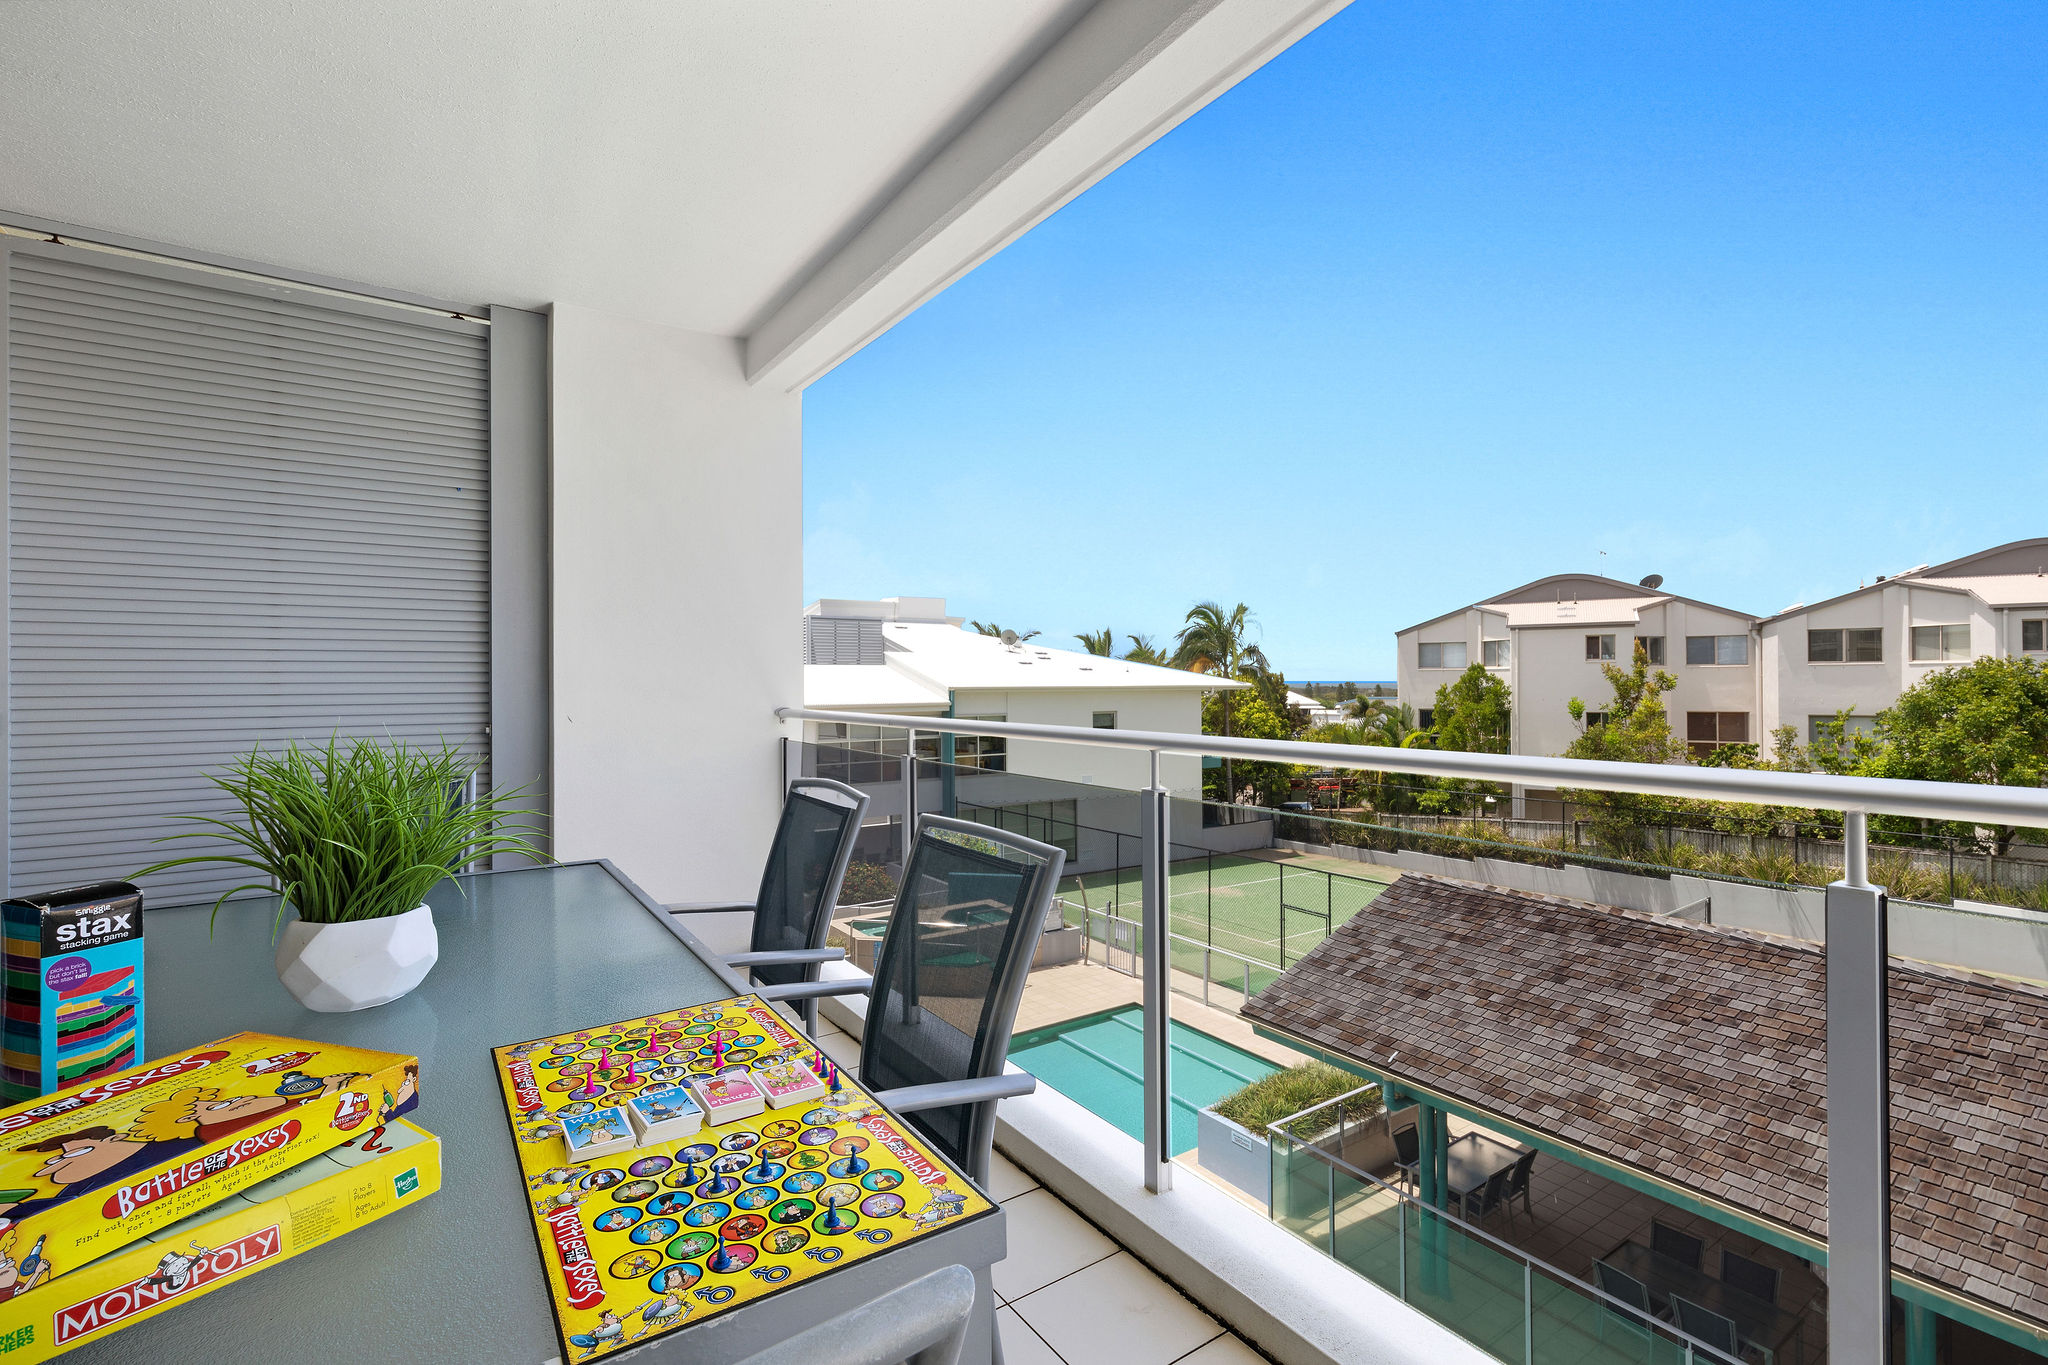 Apartment 3BR Coolum Beach  photo 24019091